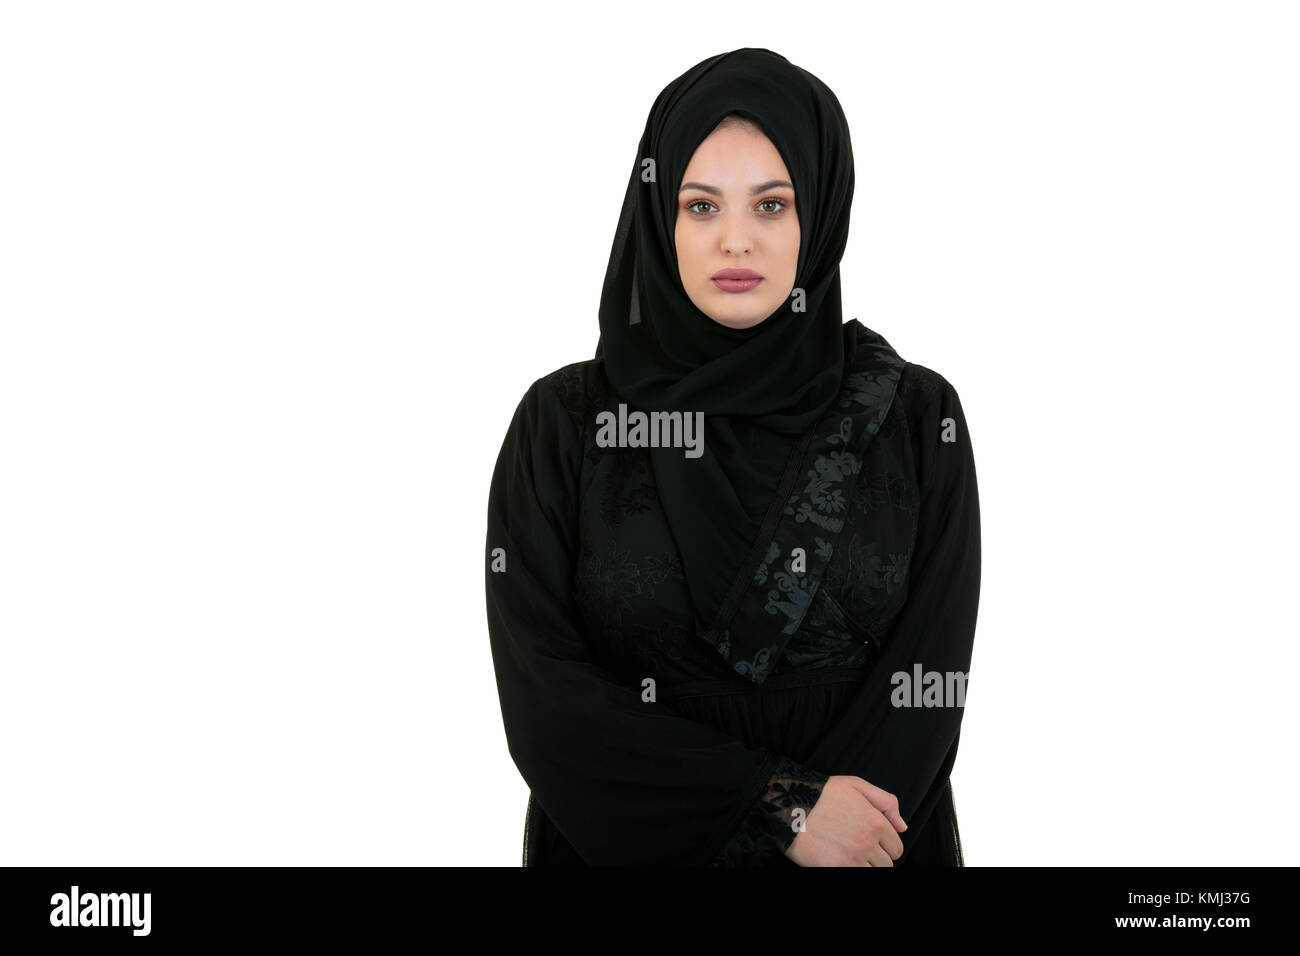 Young Woman Wearing Traditional Arabic Clothing hijab - Stock Image